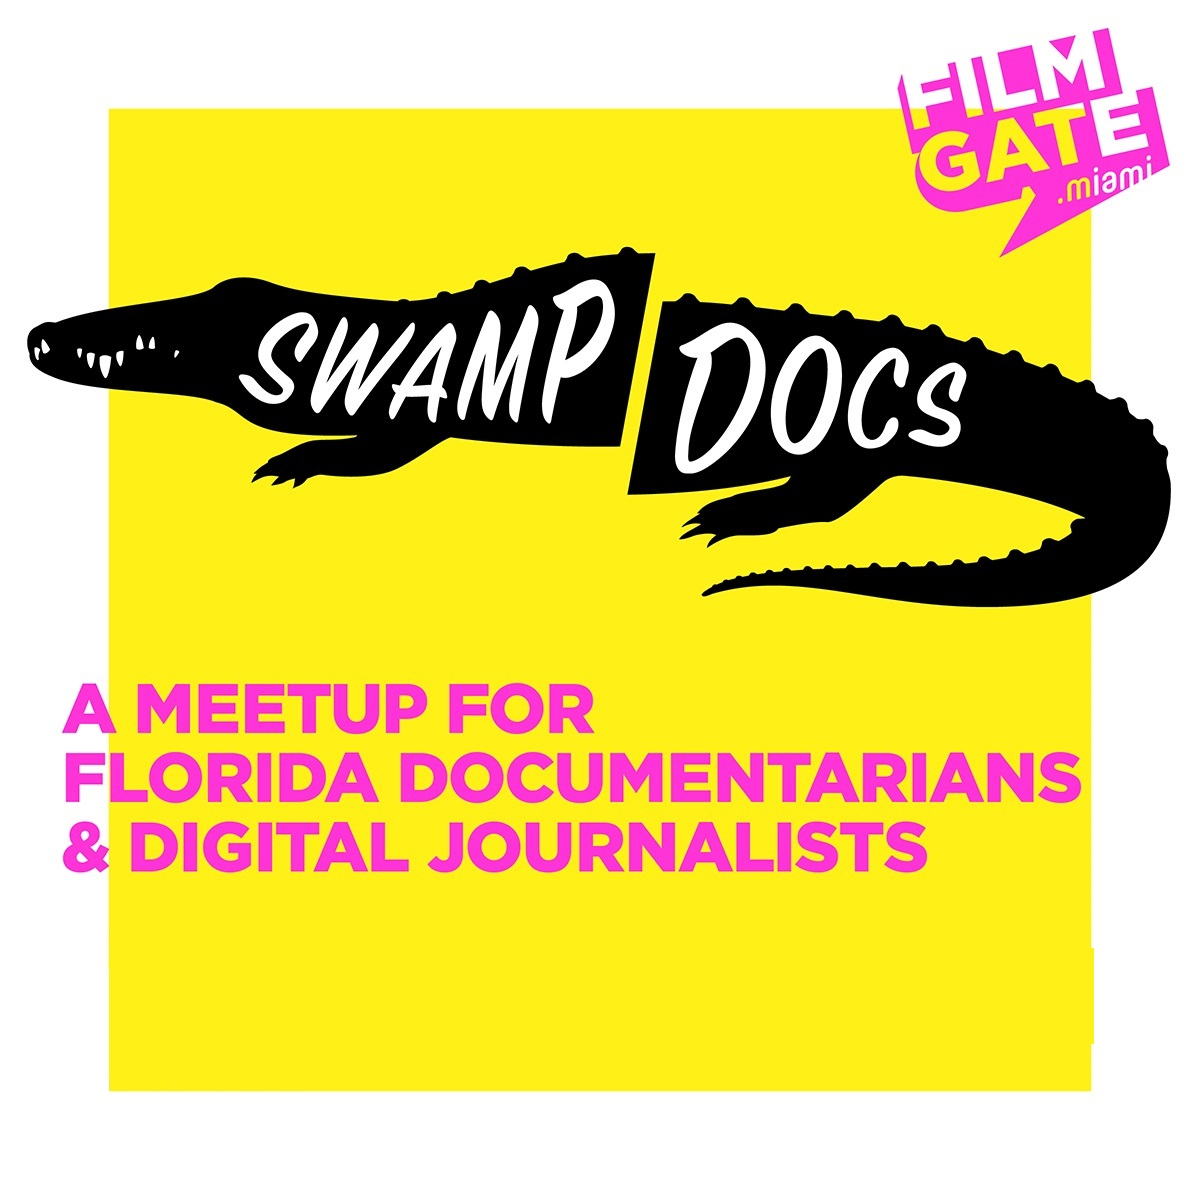 Welcome to FilmGate Miami's  SWAMP DOCS  - a conversation series exploring current issues affecting the South East Region of the US. This event provides informative support to documentarians and digital journalists. We at FilmGate Miami are stoked to have this officially open to the public.  The Swamp Docs event features a pitch session segment for projects that need assistance & guidance followed by Trailer presentations by a Florida documentary team or digital journalist with a minor Q&A. The event is then highlighted by organizations seeking to collaborate or team up with emerging documentarians and digital journalists. We wrap the event with networker segment. Meet and collaborate with some of the most important activists in South Florida!     THE SPEAKERS   Juliet Romeo  &  Fernando Migliassi